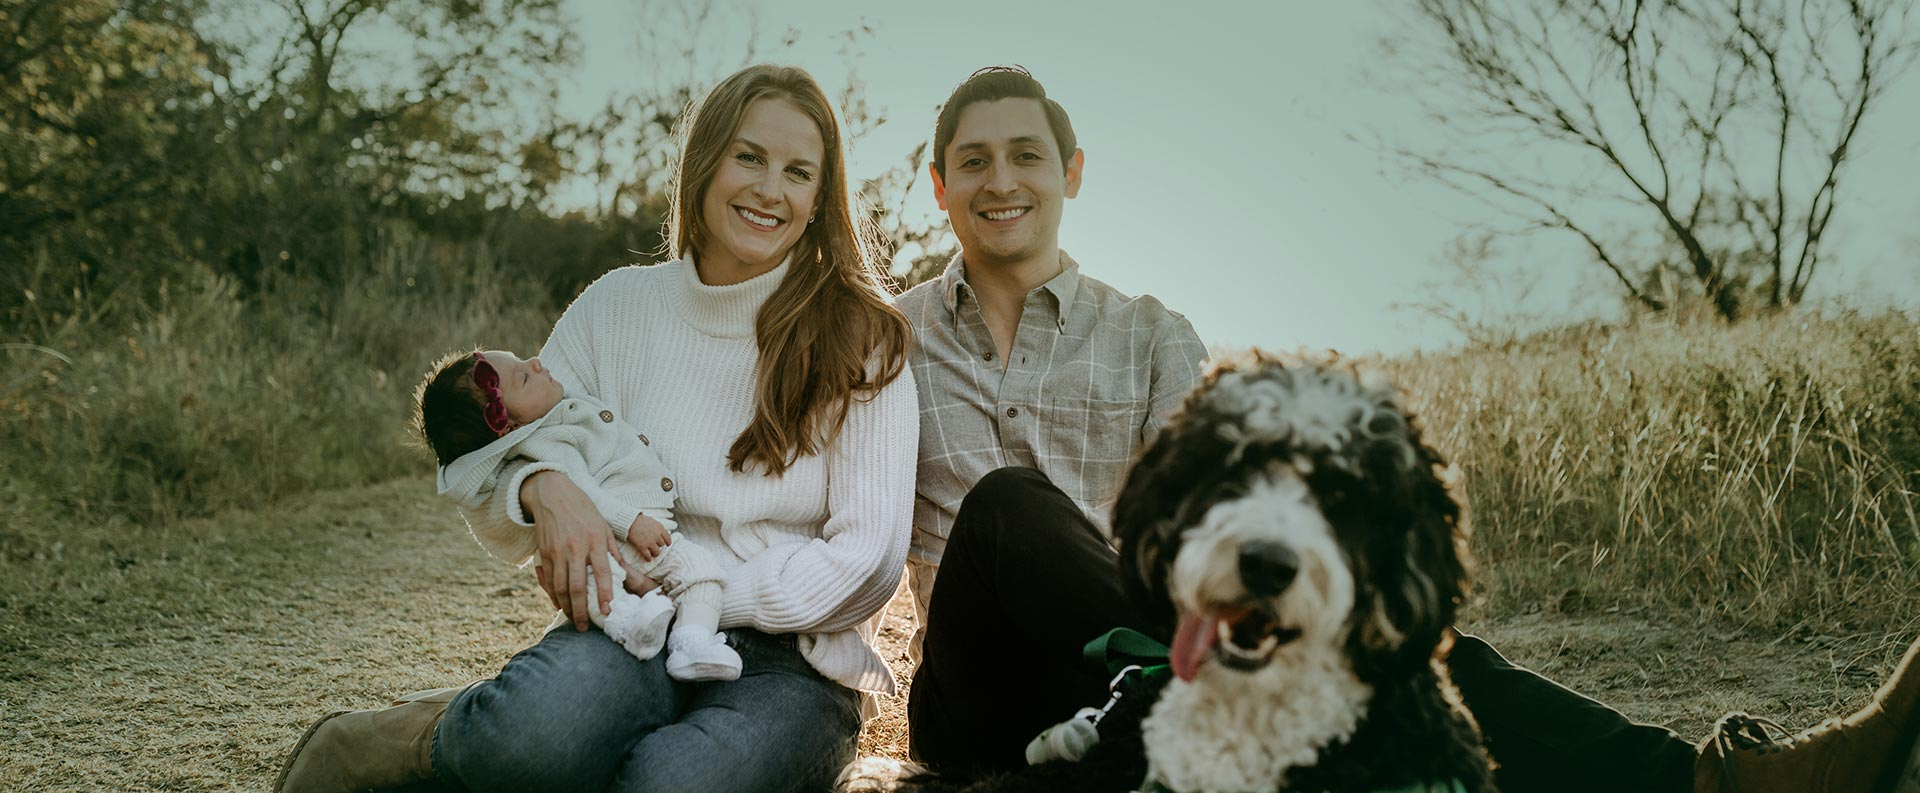 Dr. Christopher Naranjo and his family portrait